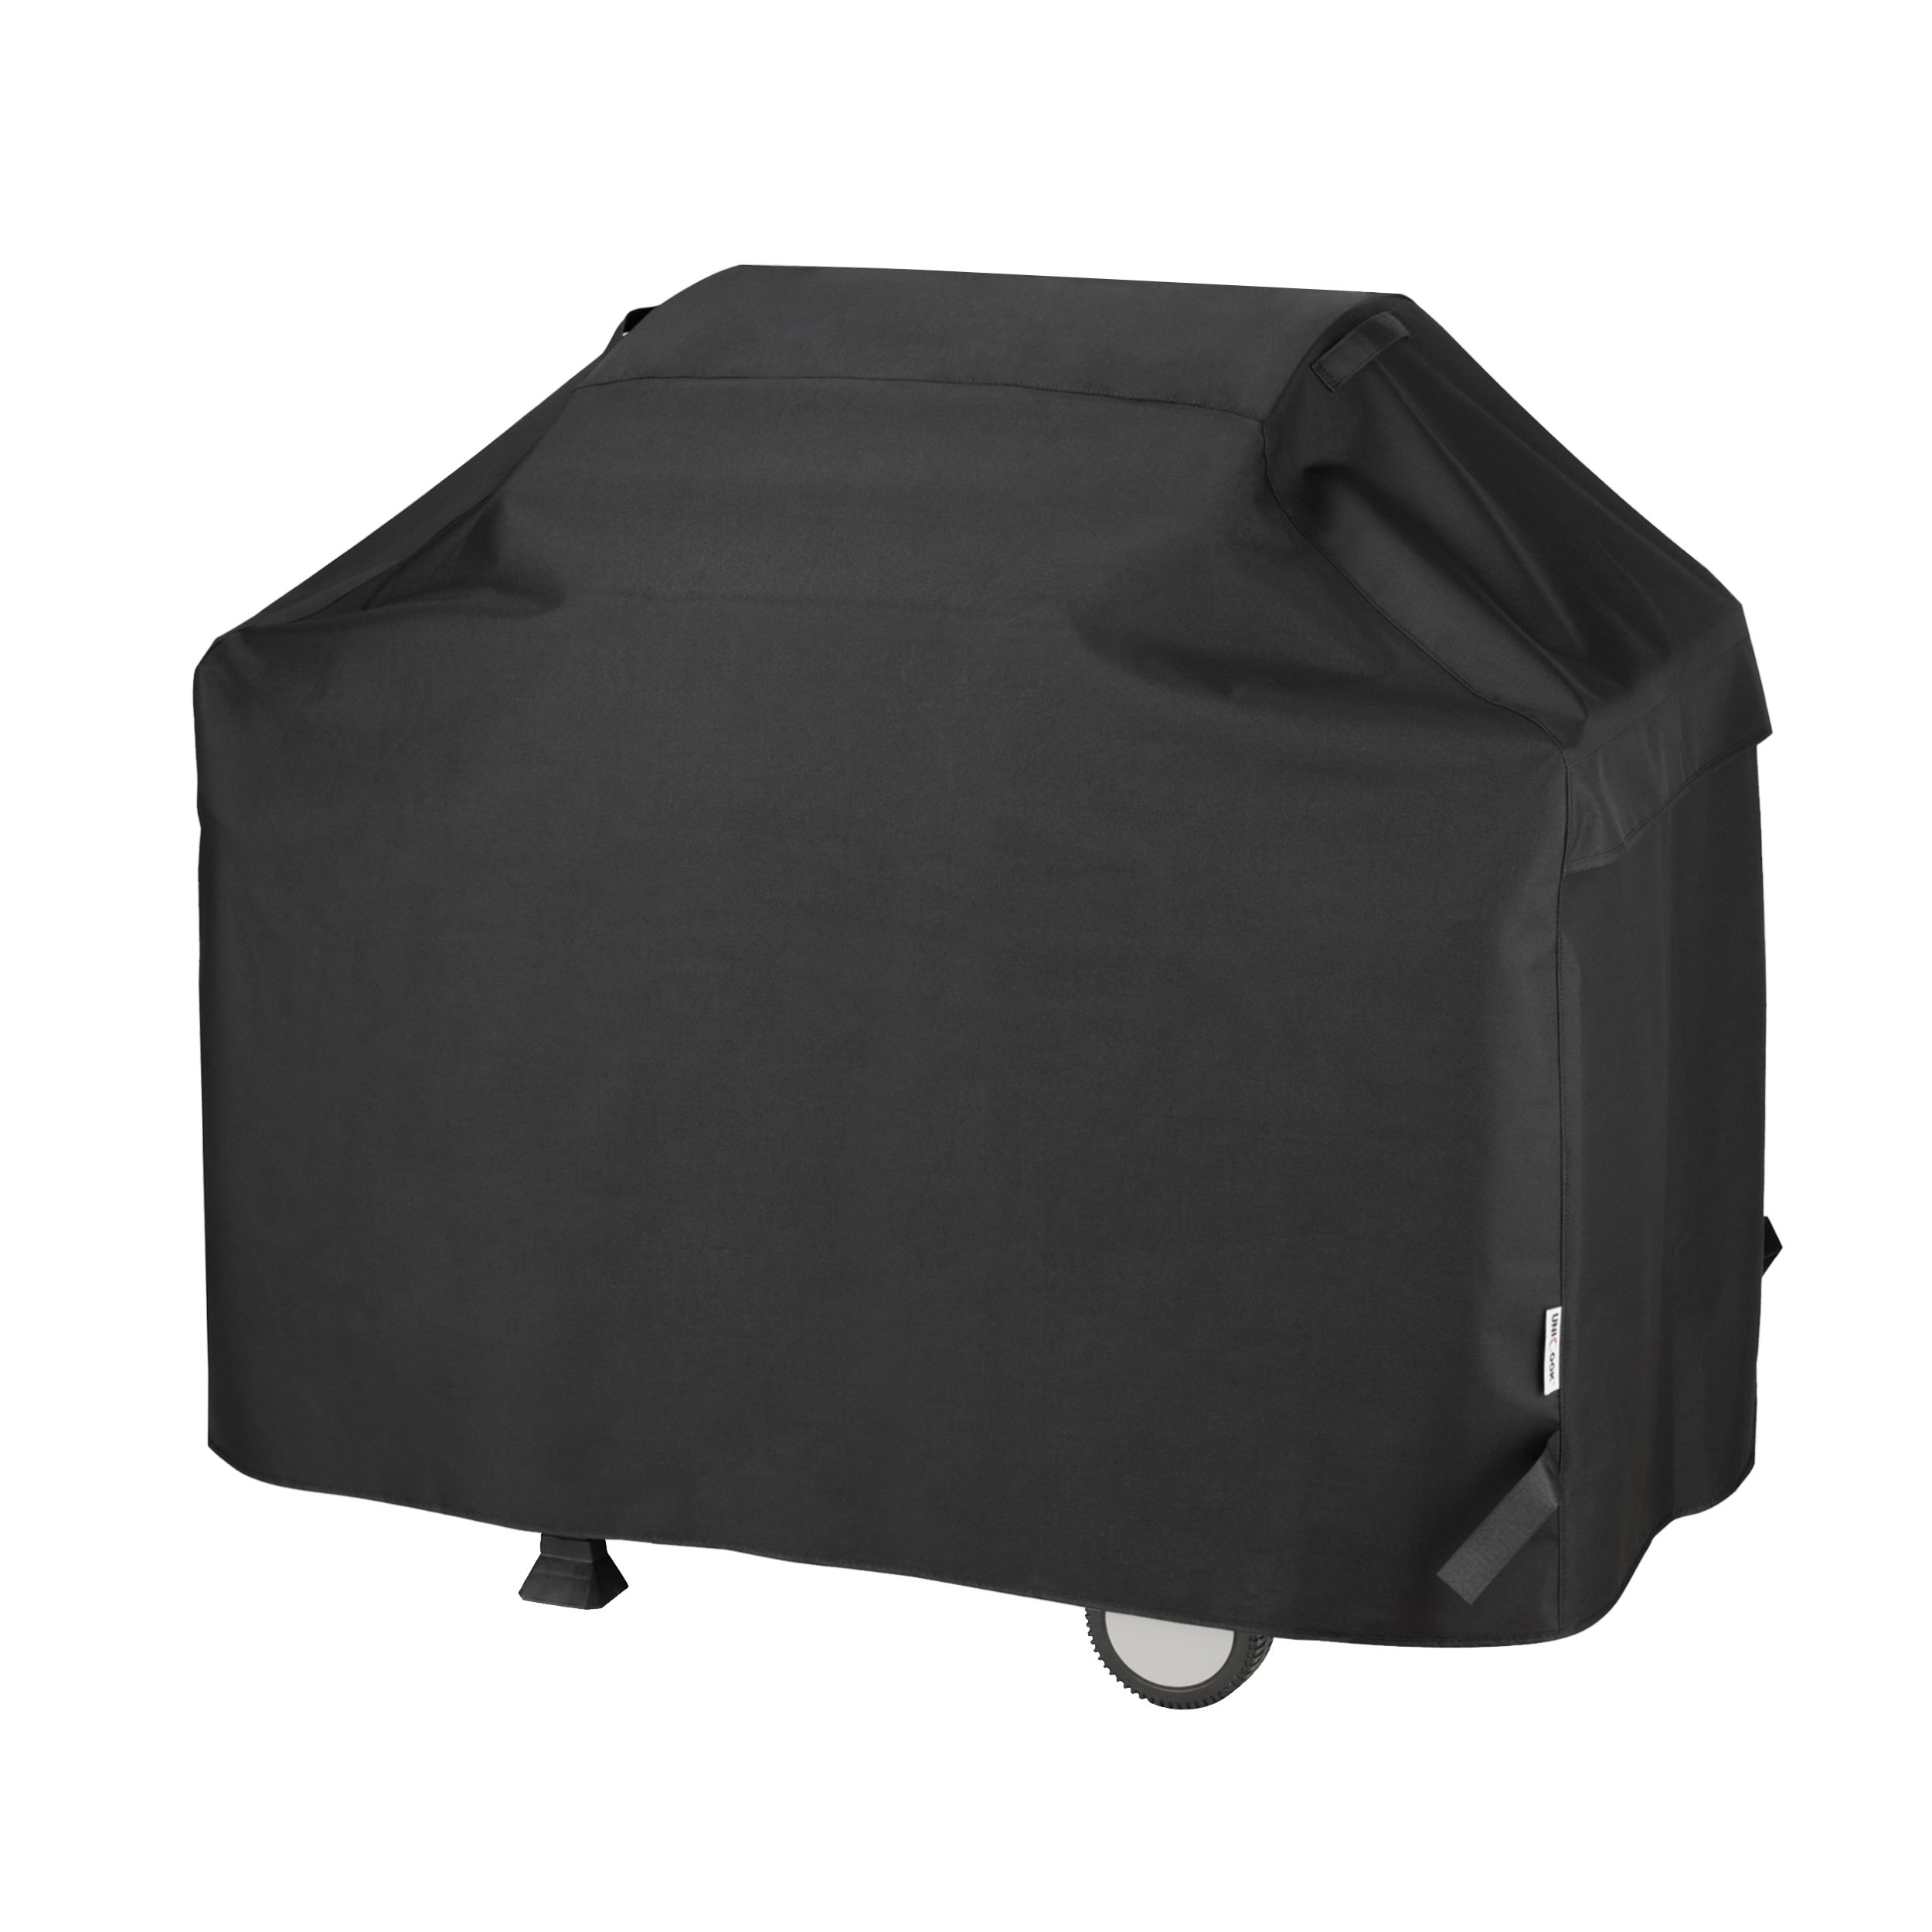 UNICOOK Heavy Duty Waterproof Barbecue Gas Grill Cover, 55-inch BBQ Cover, Special Fade and UV Resistant Material,Fits Grills of Weber Char-Broil Nexgrill Brinkmann and More product image